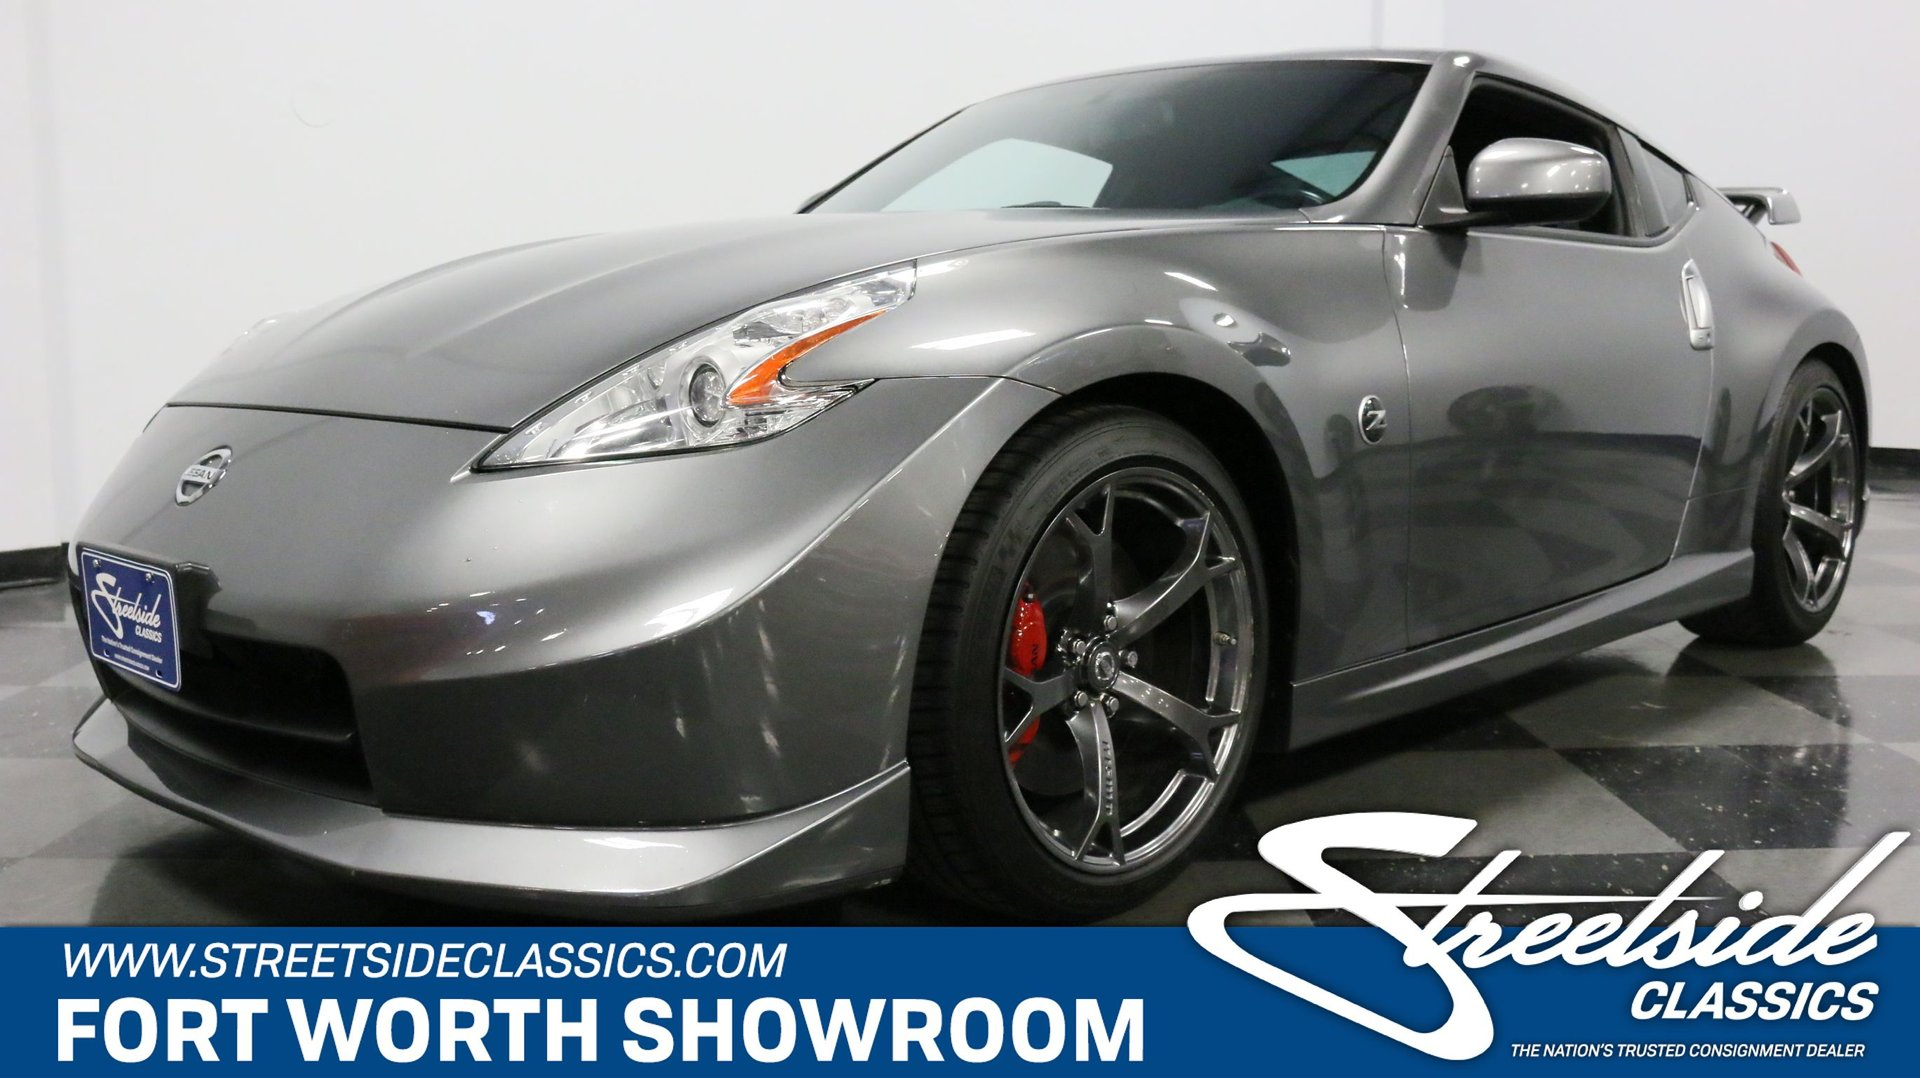 2013 Nissan 370z Classic Cars For Sale Streetside Classics The Nation S 1 Consignment Dealer